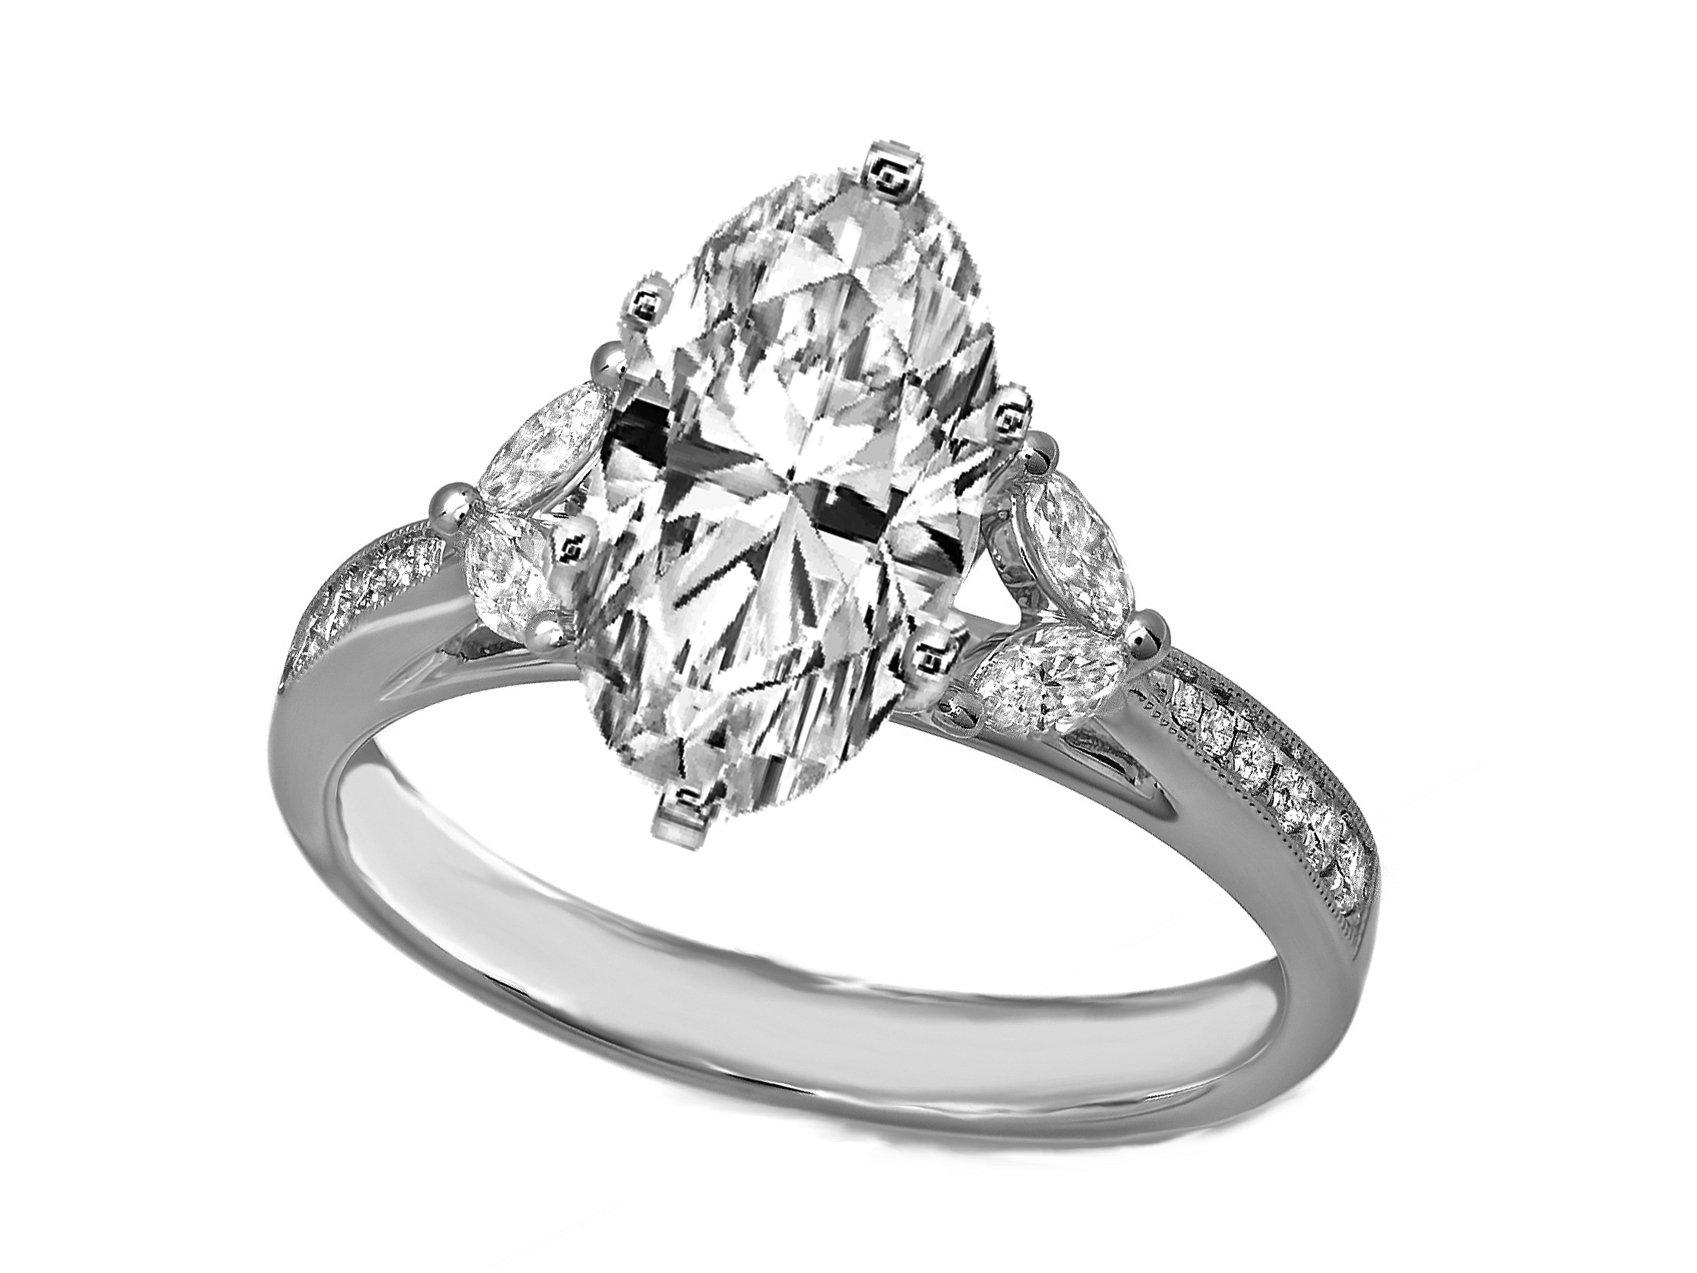 ring jewelry cut today product rose rings gold solitaire watches shipping diamond marquise auriya engagement overstock free tdw